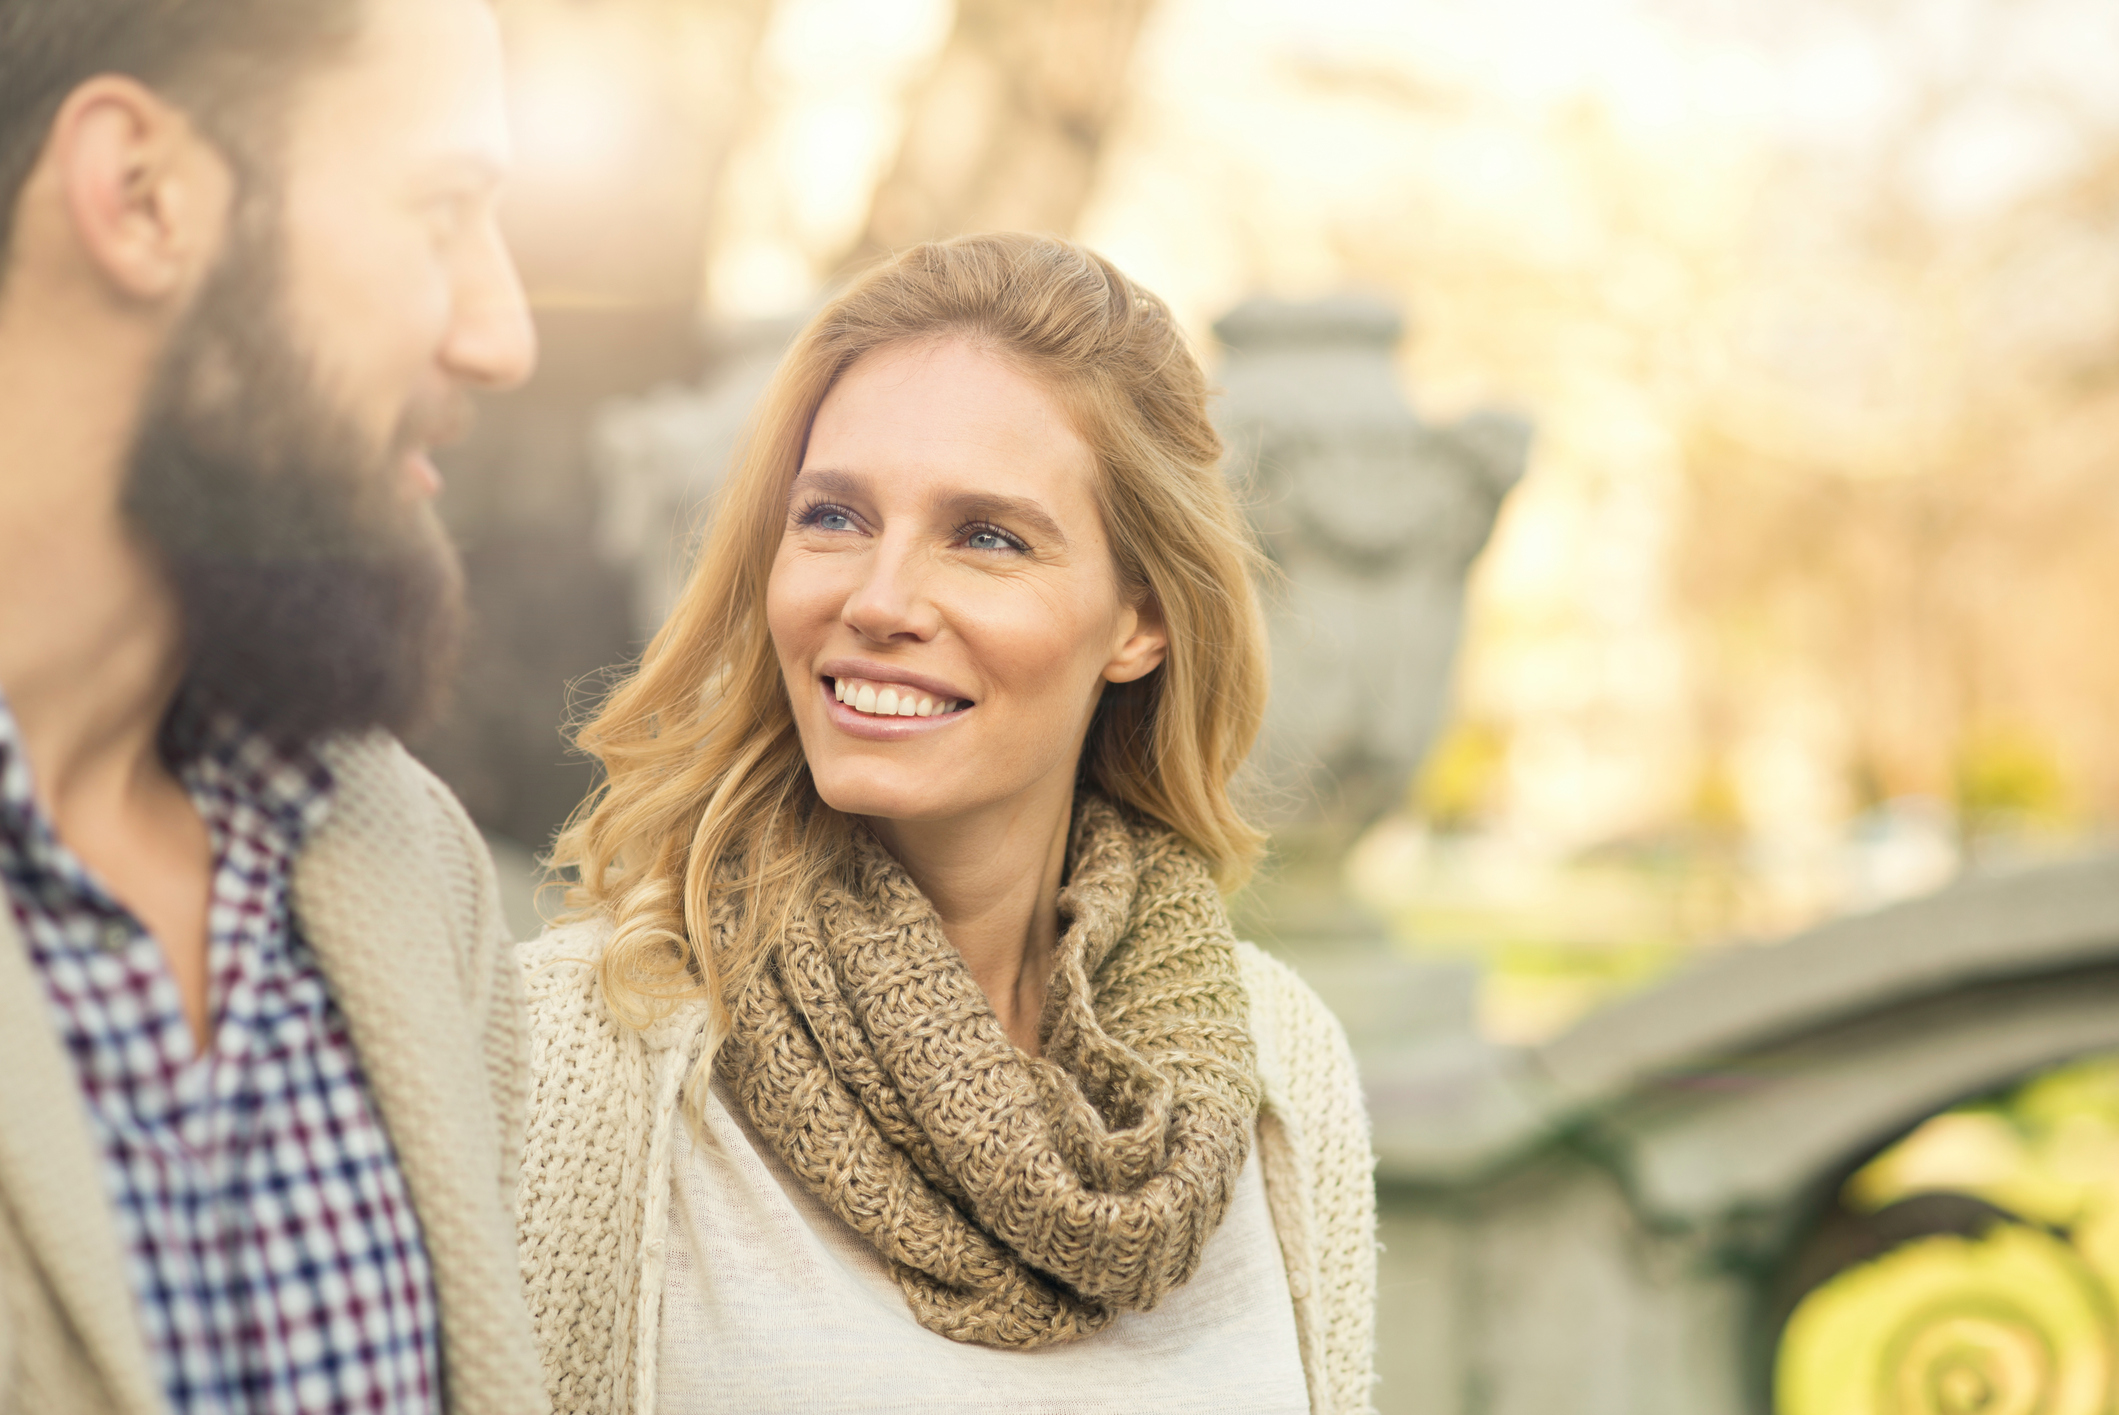 Woman with white teeth and a beautiful smile looking at man with a beard